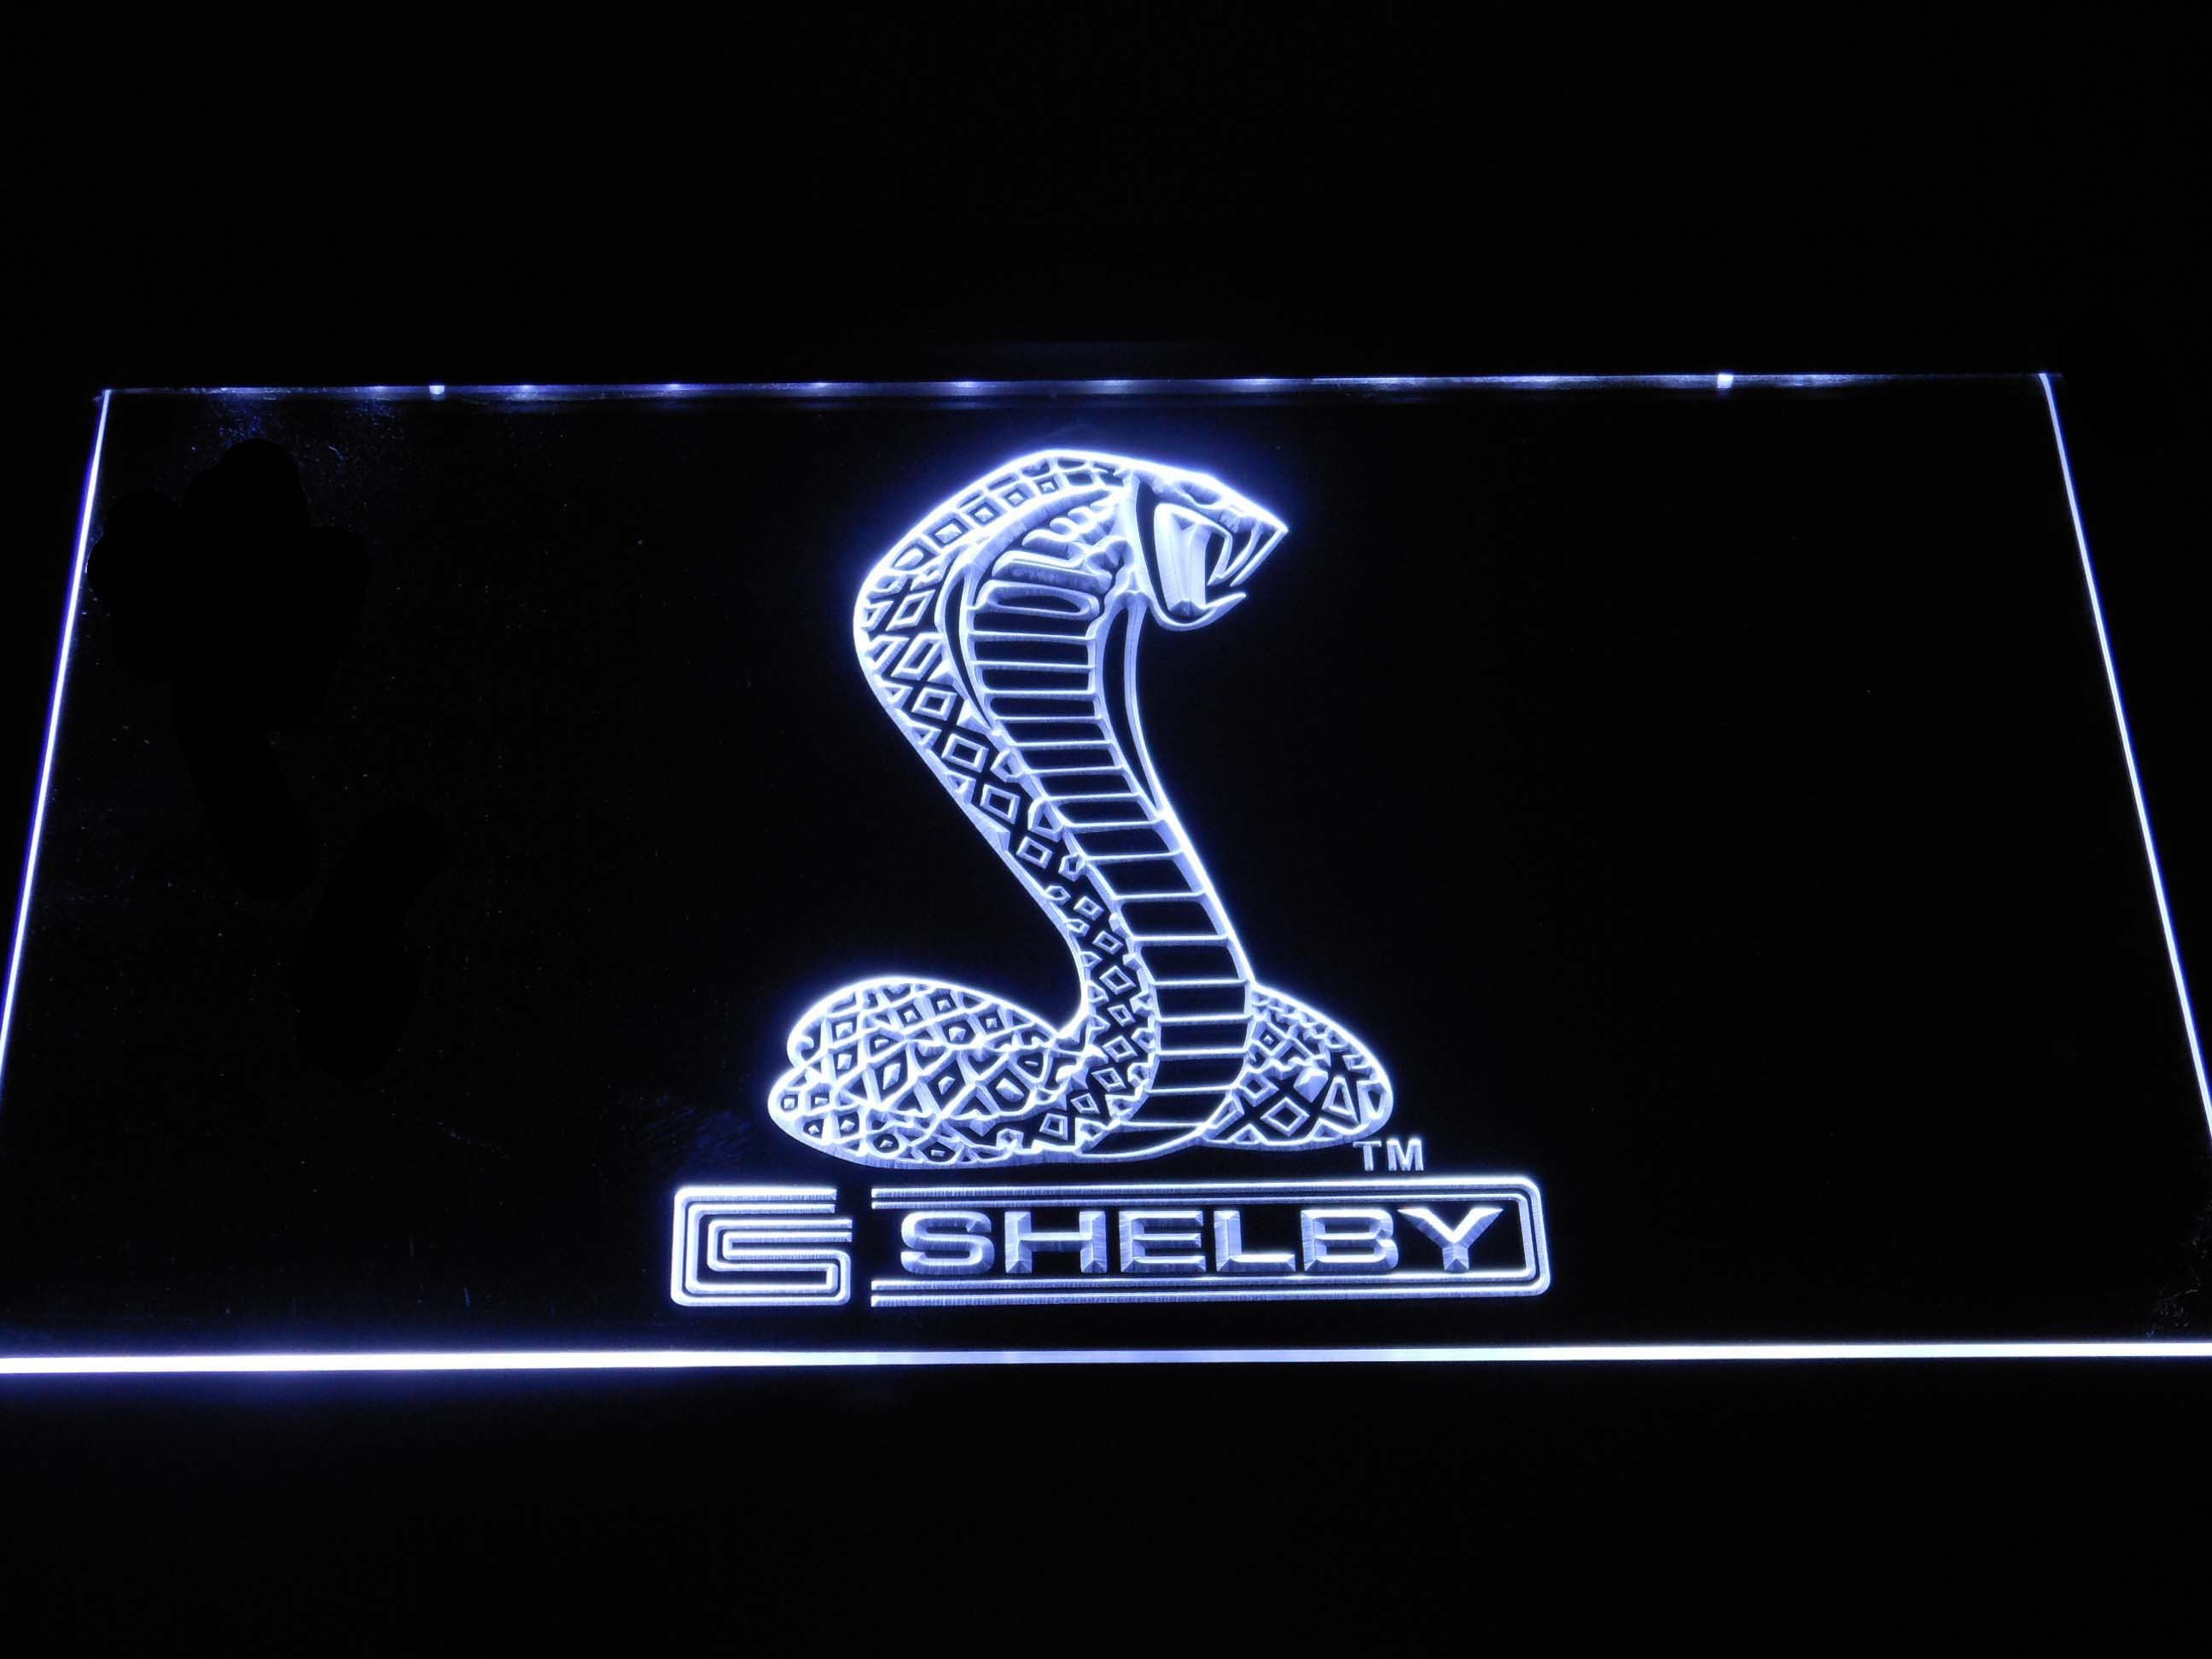 Ford Shelby Led Neon Sign In 2020 Led Neon Signs Cool Bedroom